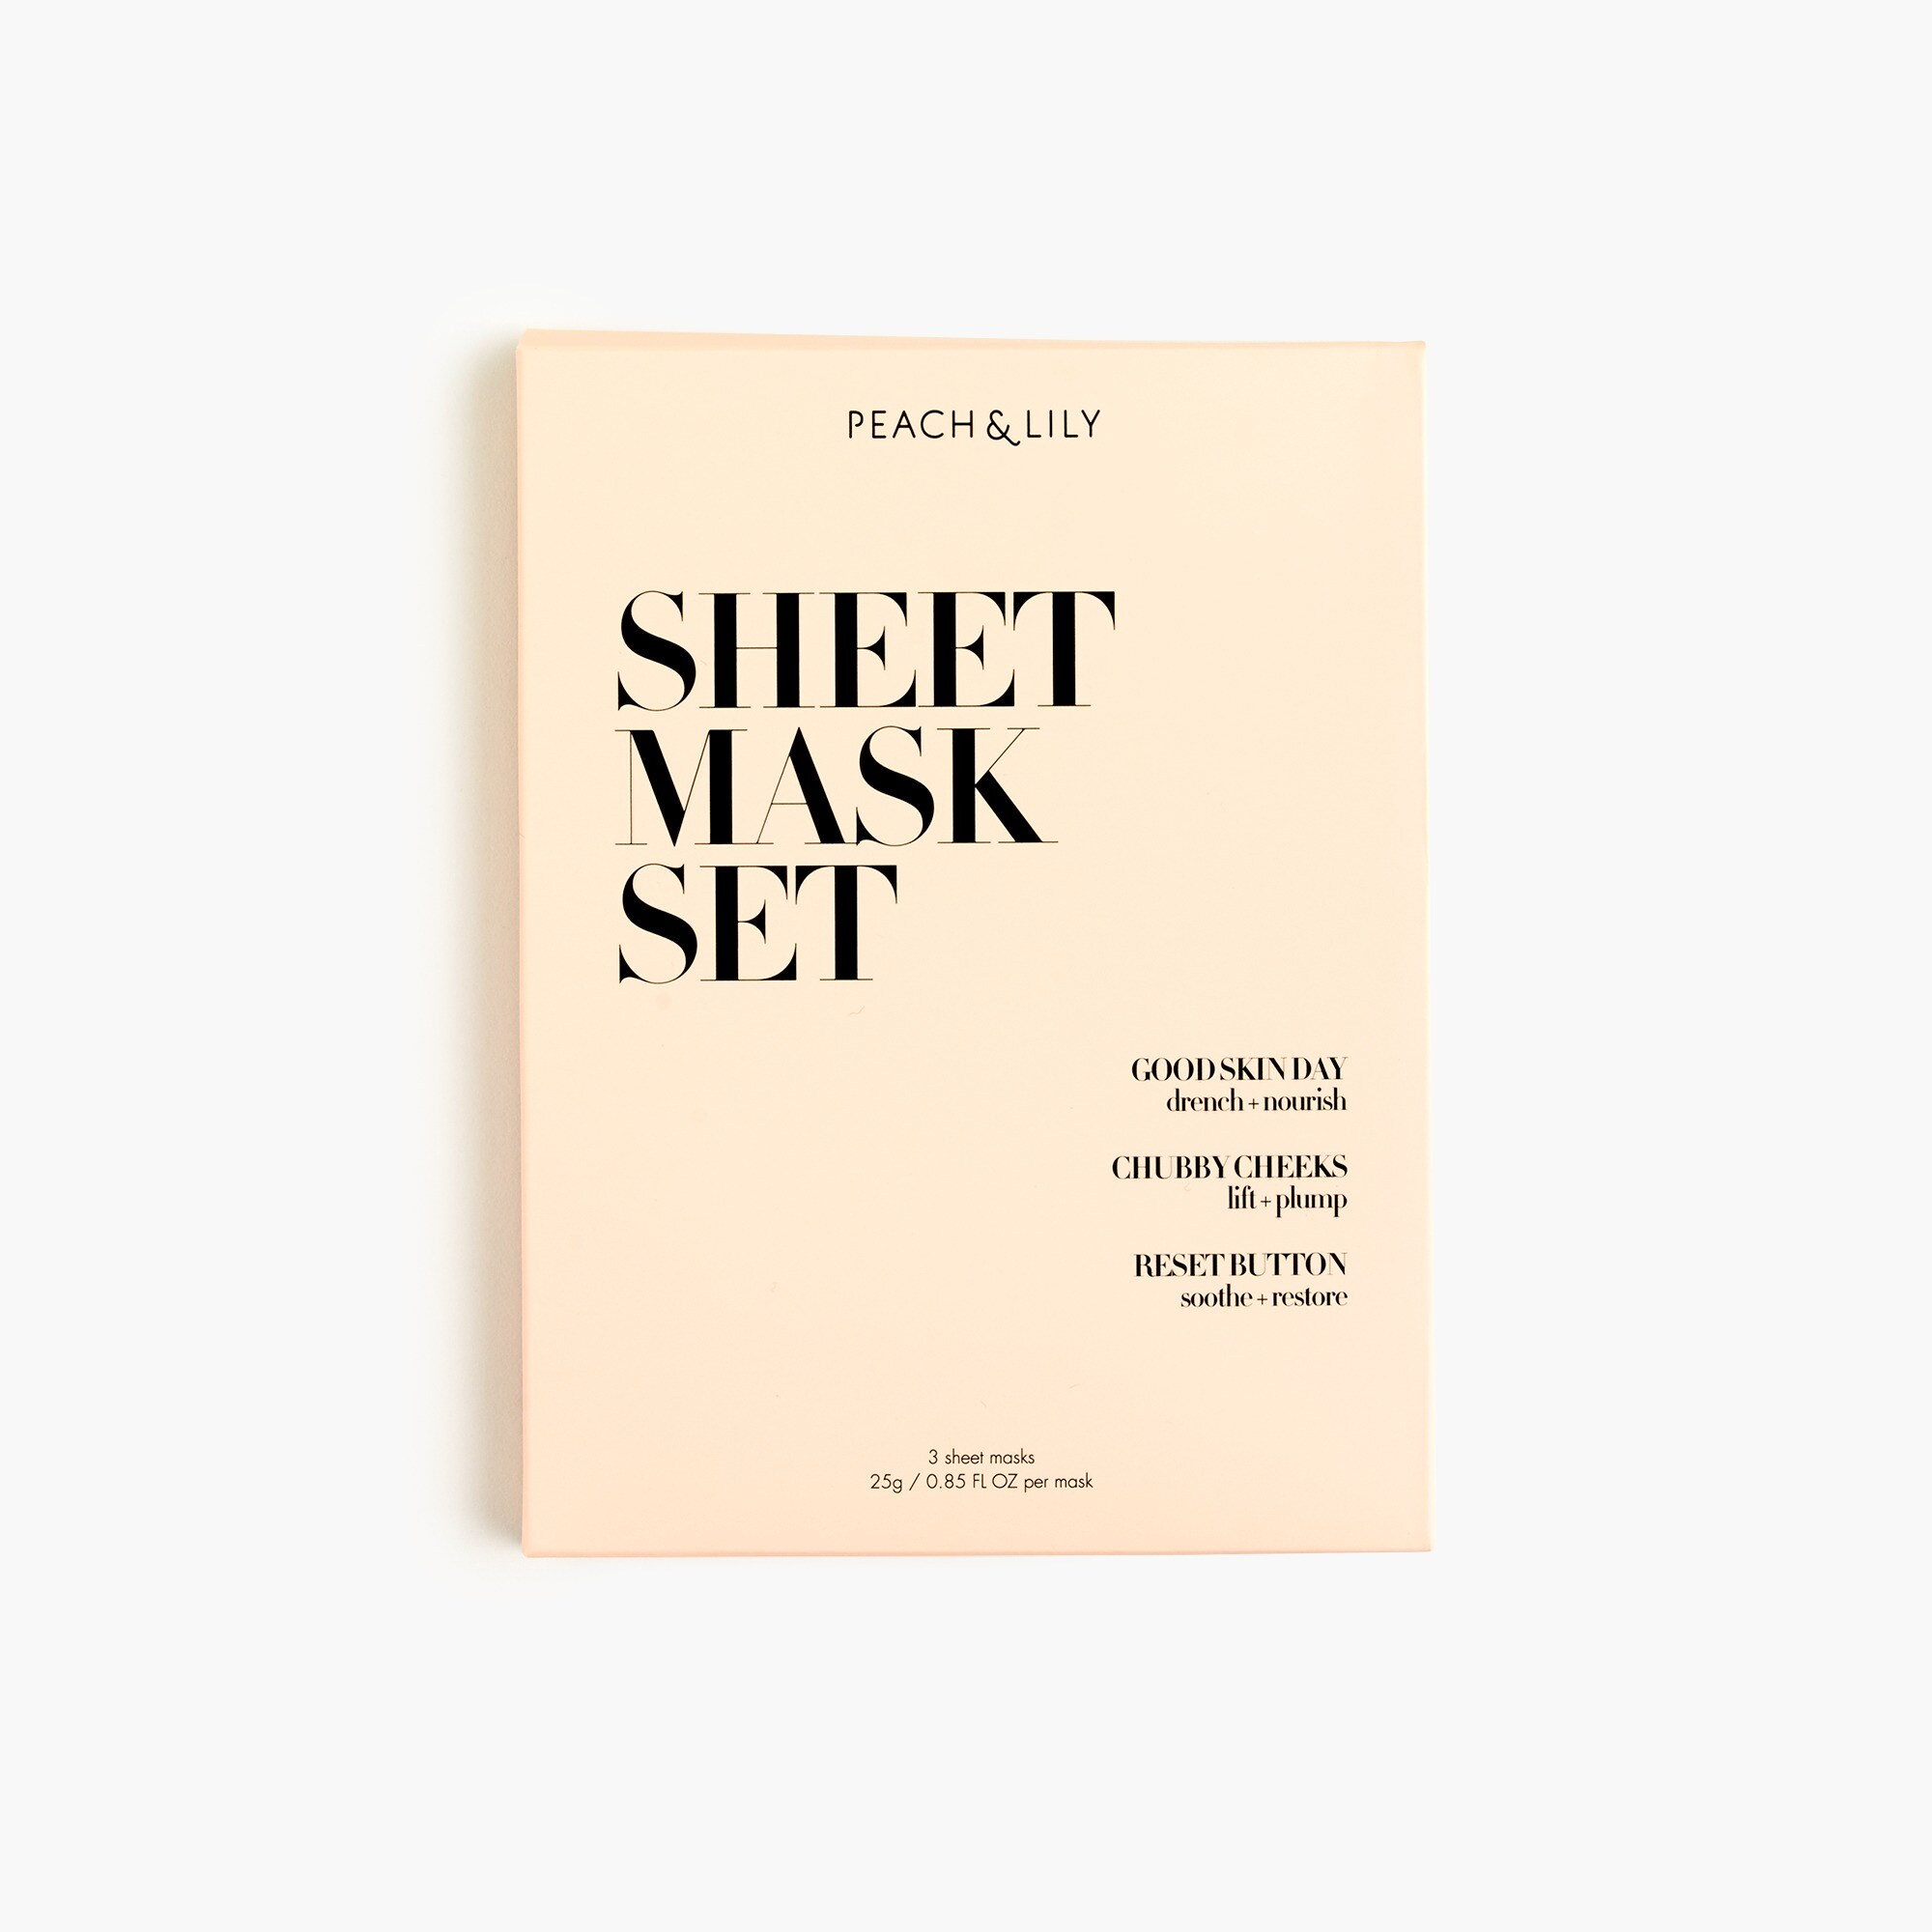 Peach & Lily Dream Sheet Mask set women j.crew in good company c